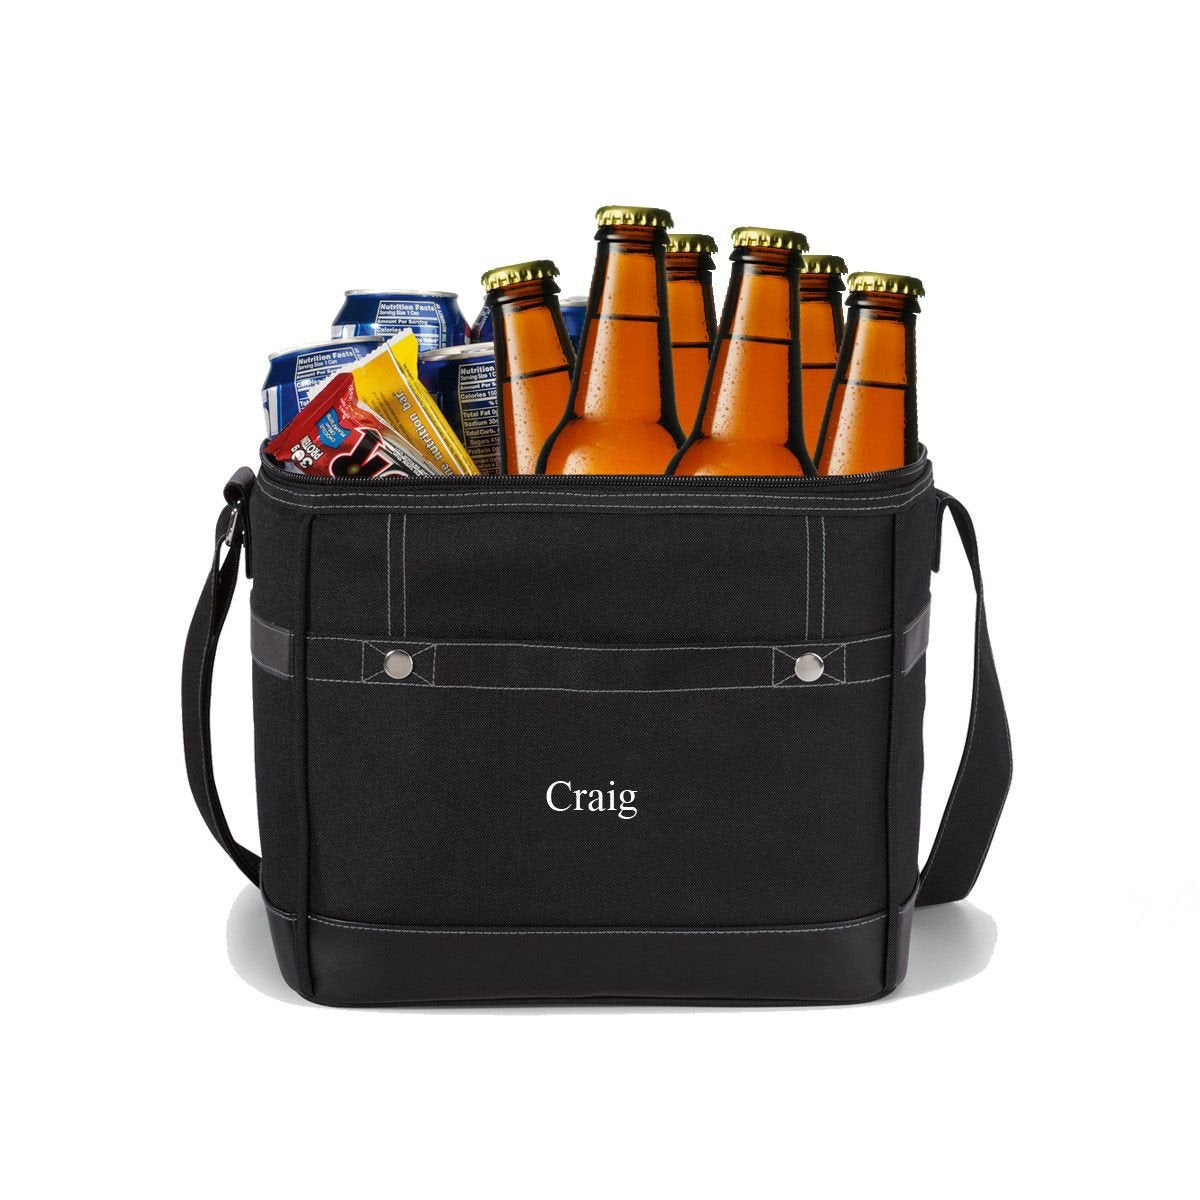 Personalized-12-Pack-Cooler-Tote